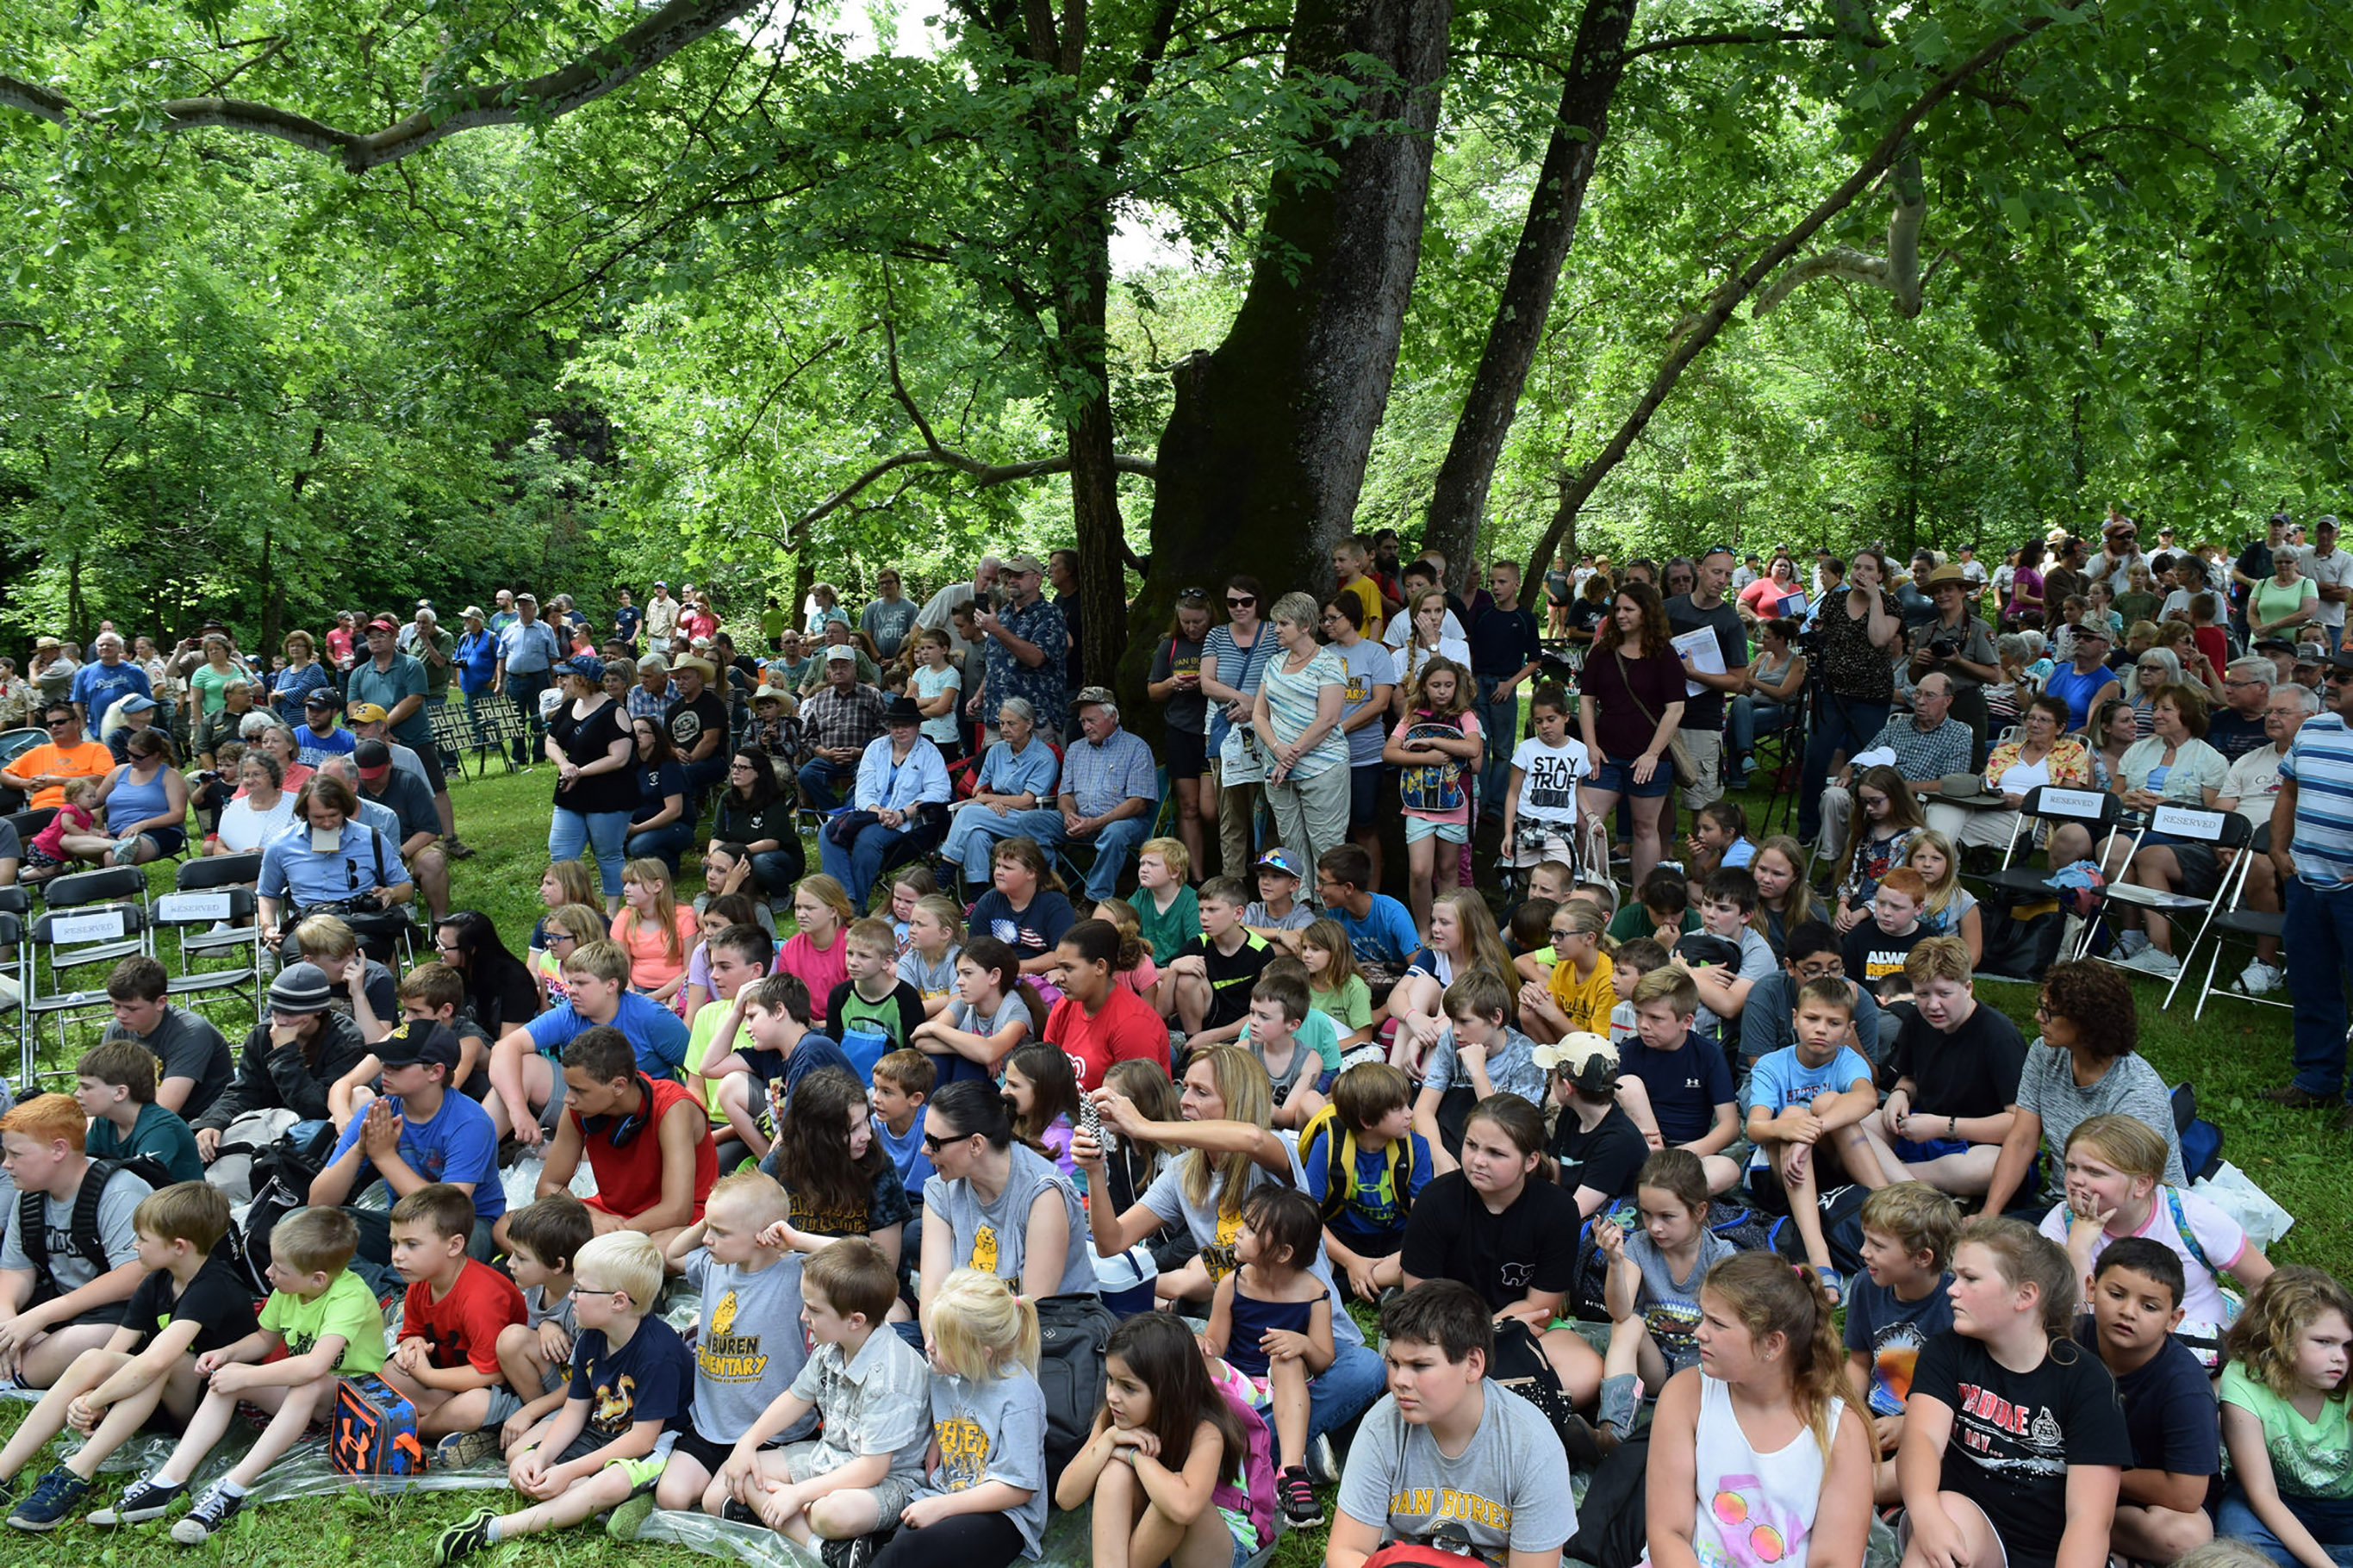 Large crowd of onlookers seated around a tree, on the grass and in chairs. Most on the grass are children.